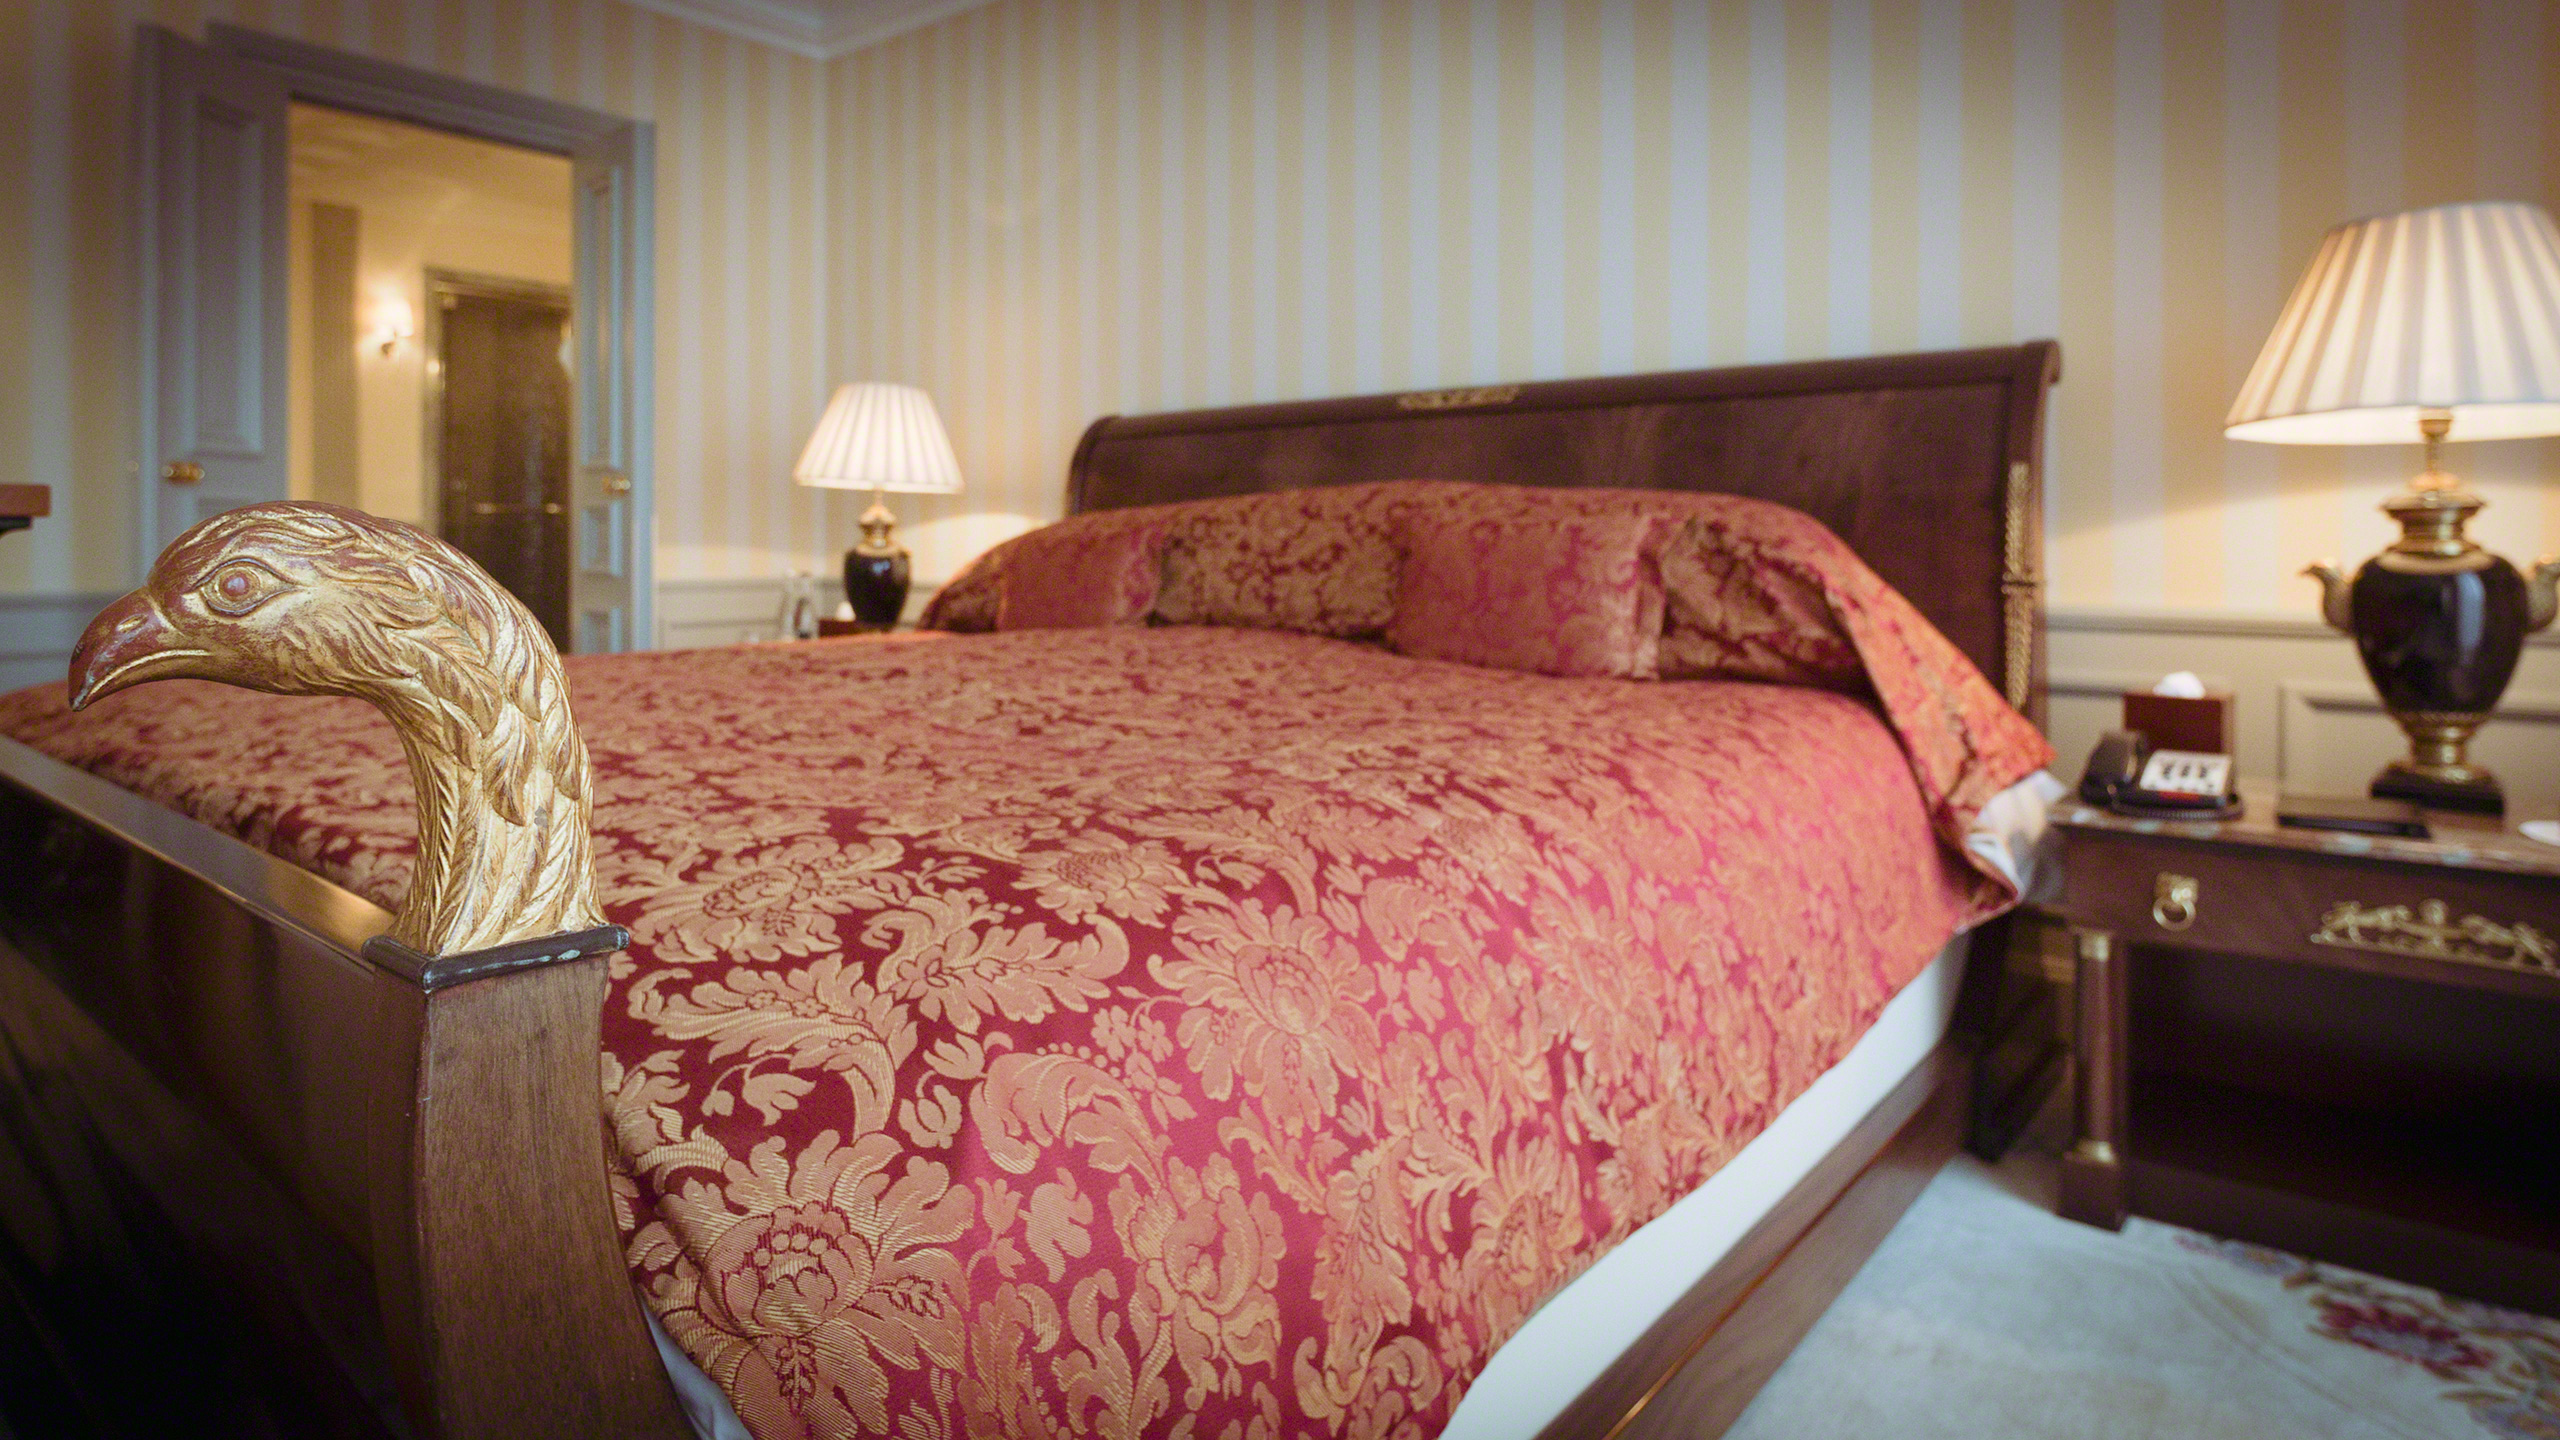 Luxushotel Adlon Kempinski Berlin Royal Suite Königs Bett